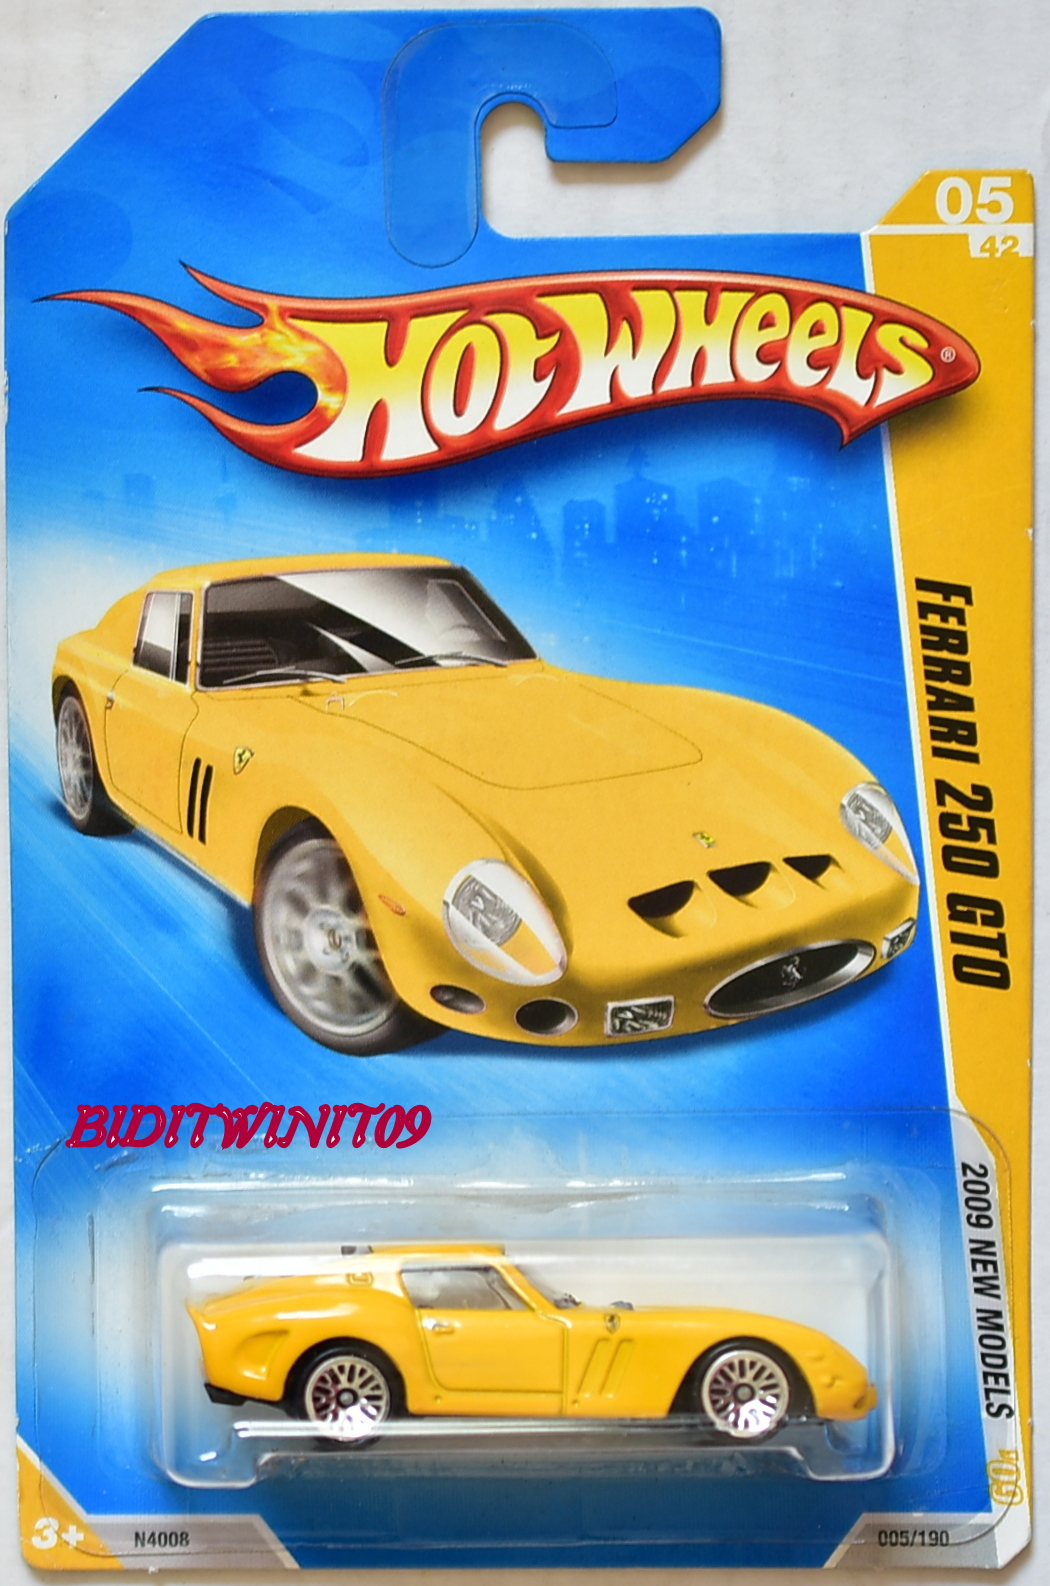 HOT WHEELS 2009 NEW MODELS FERRARI 250 GTO YELLOW E+